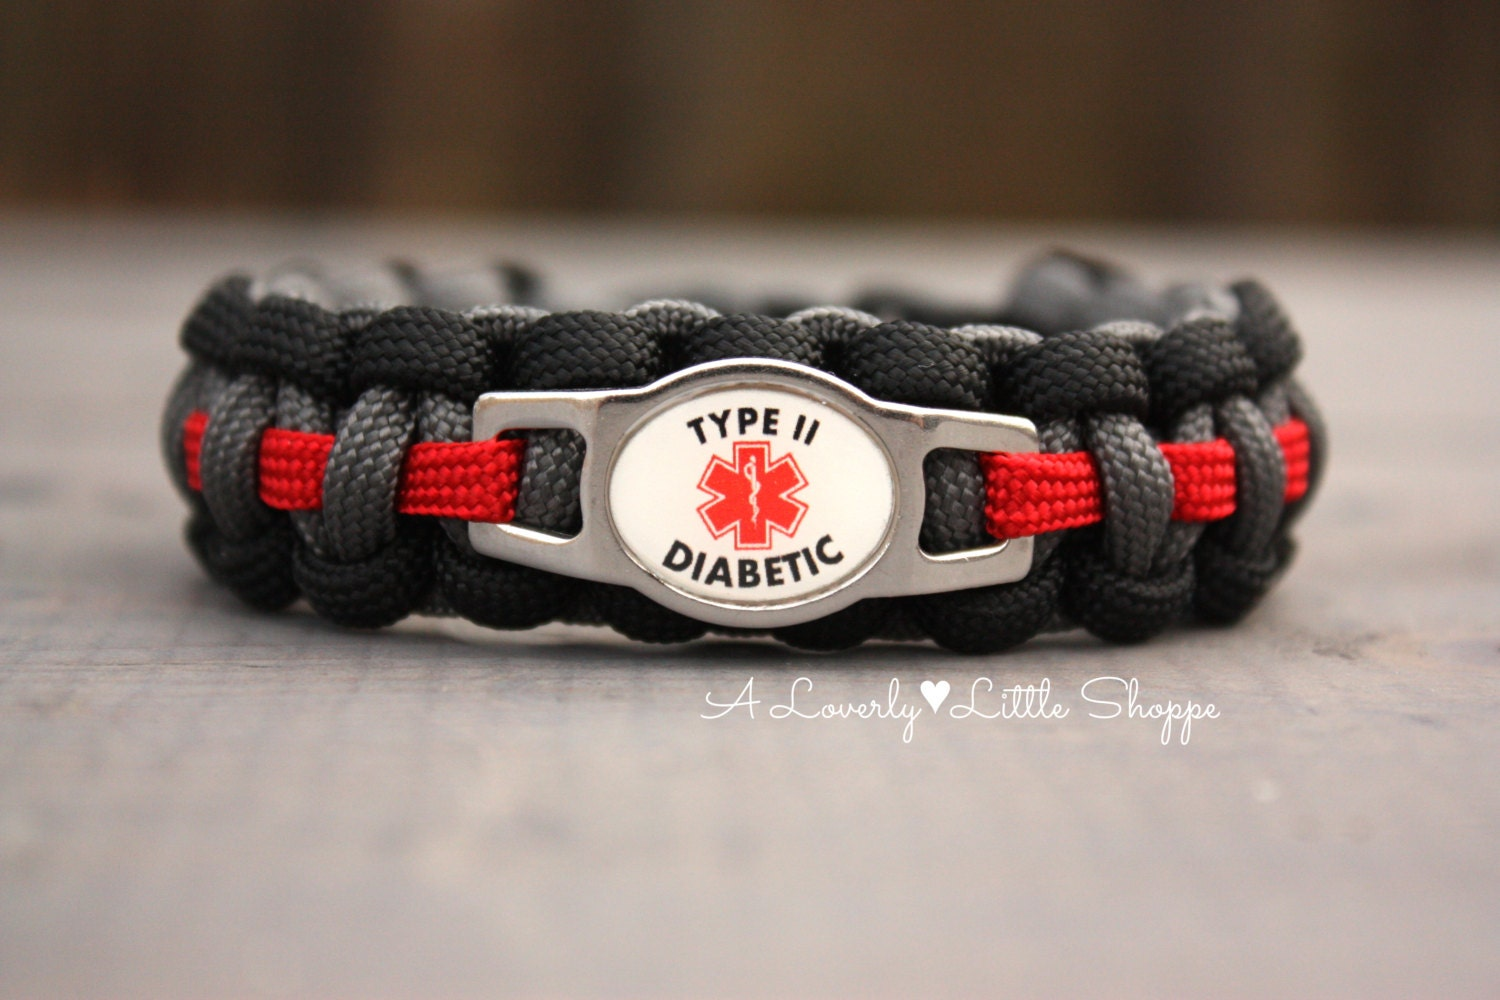 alert type 2 diabetes paracord bracelet with stainless